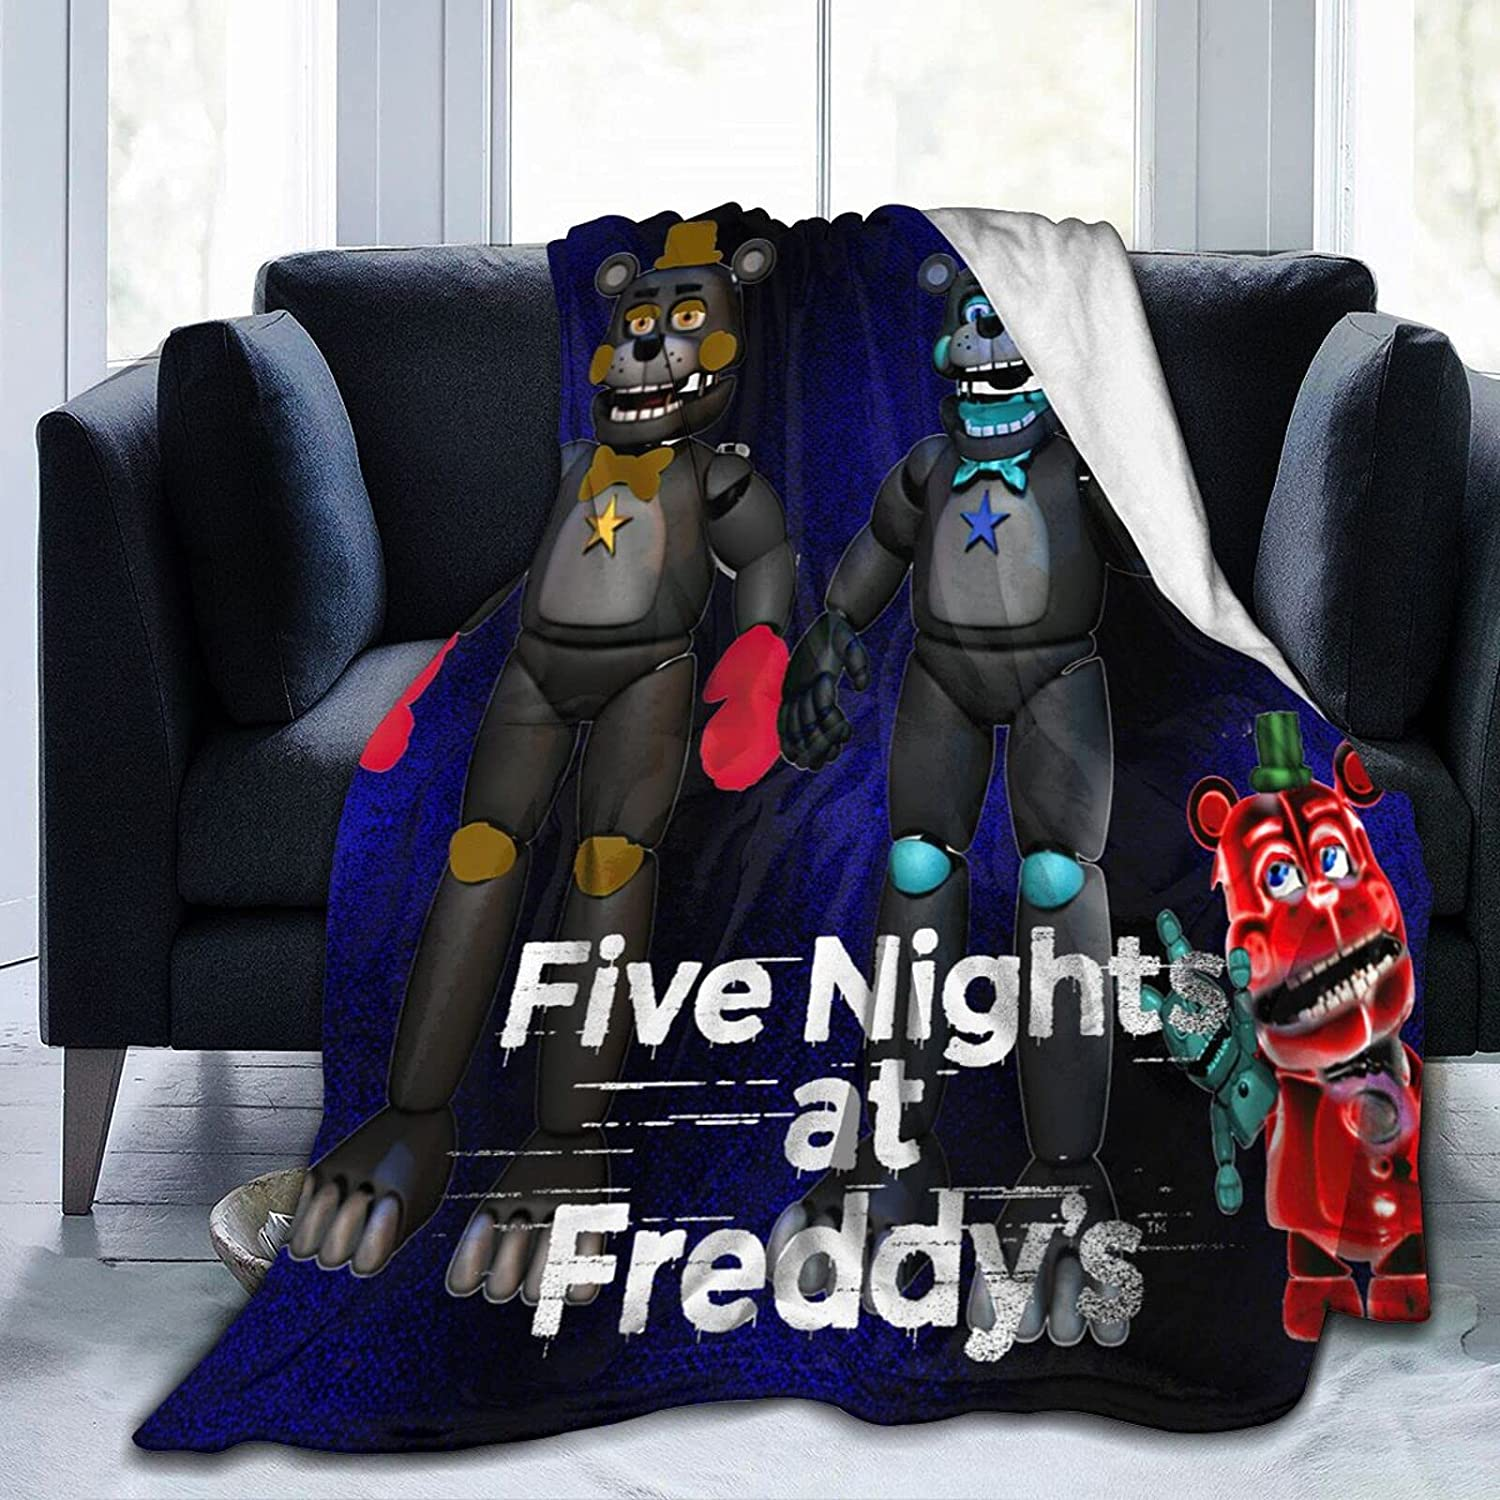 Flannel Throw Five-Nights at Comfortable Blanket Freddy's Free shipping anywhere in the nation Womens Japan's largest assortment